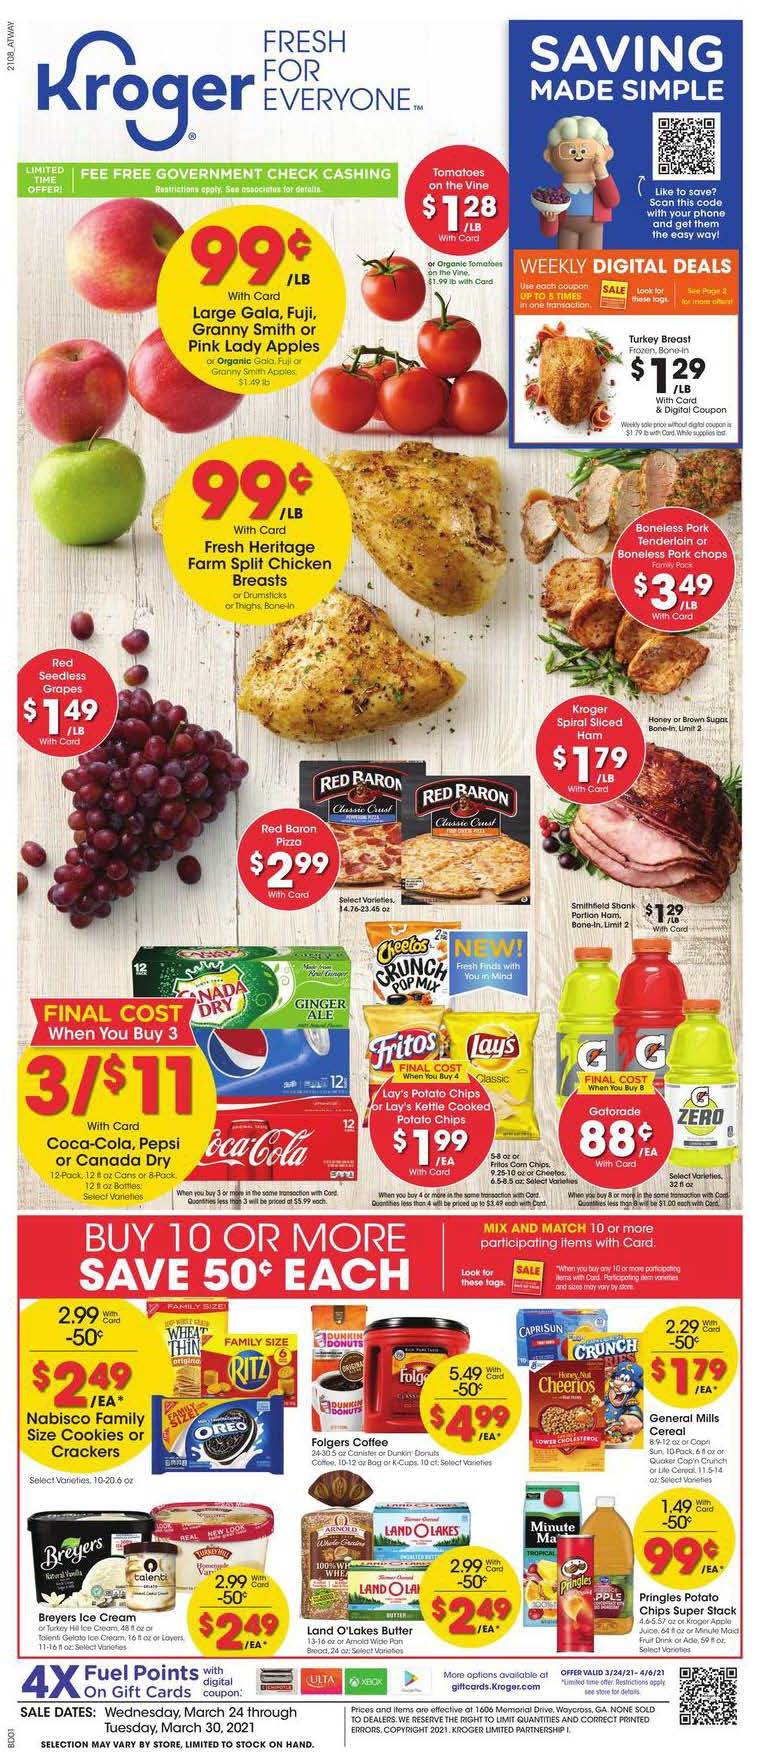 Kroger Weekly Ad (3/24/21 - 3/30/21) Preview